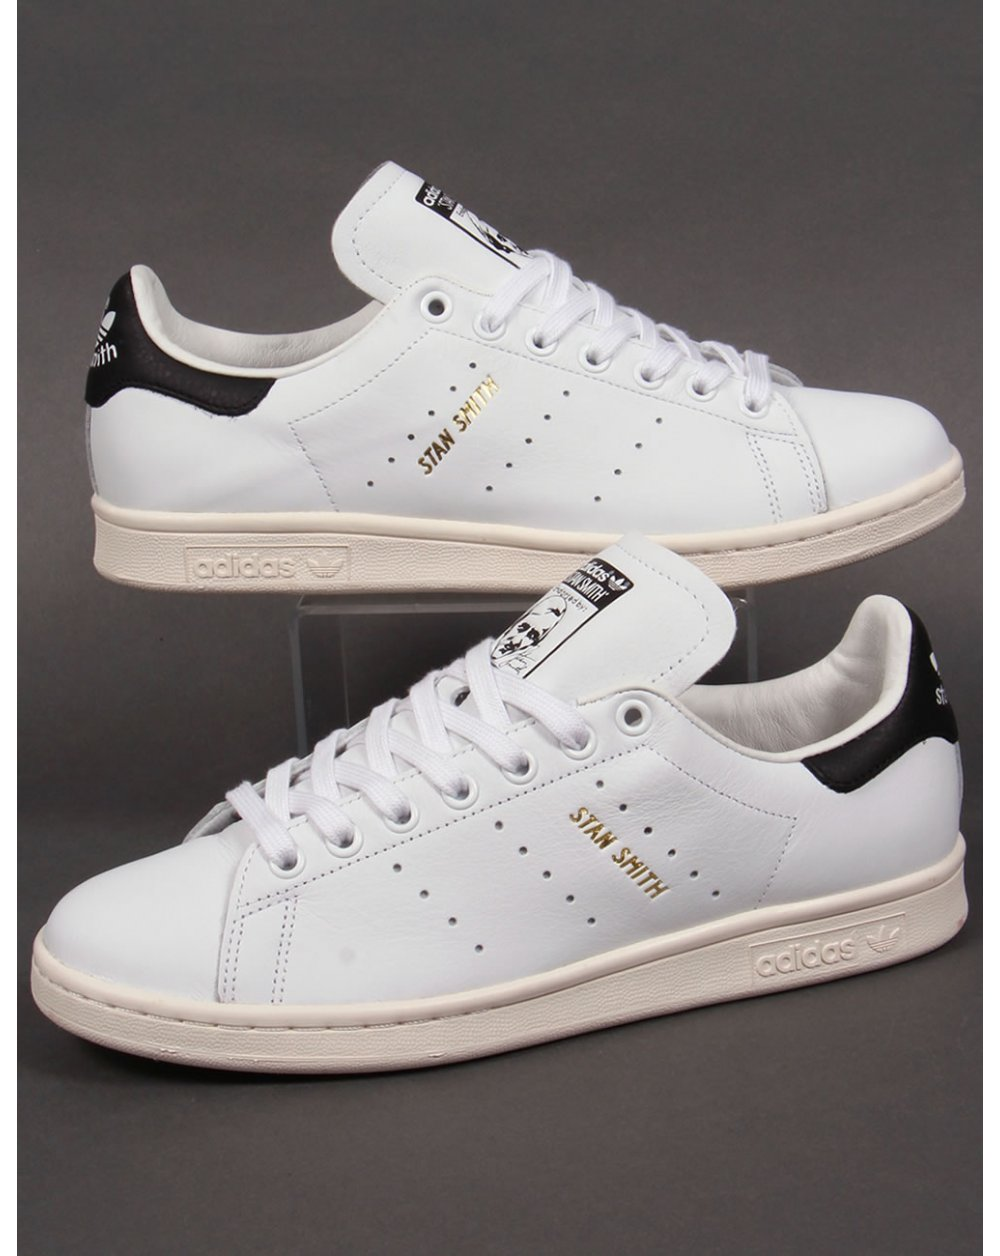 stan smith adidas black white images galleries with a bite. Black Bedroom Furniture Sets. Home Design Ideas